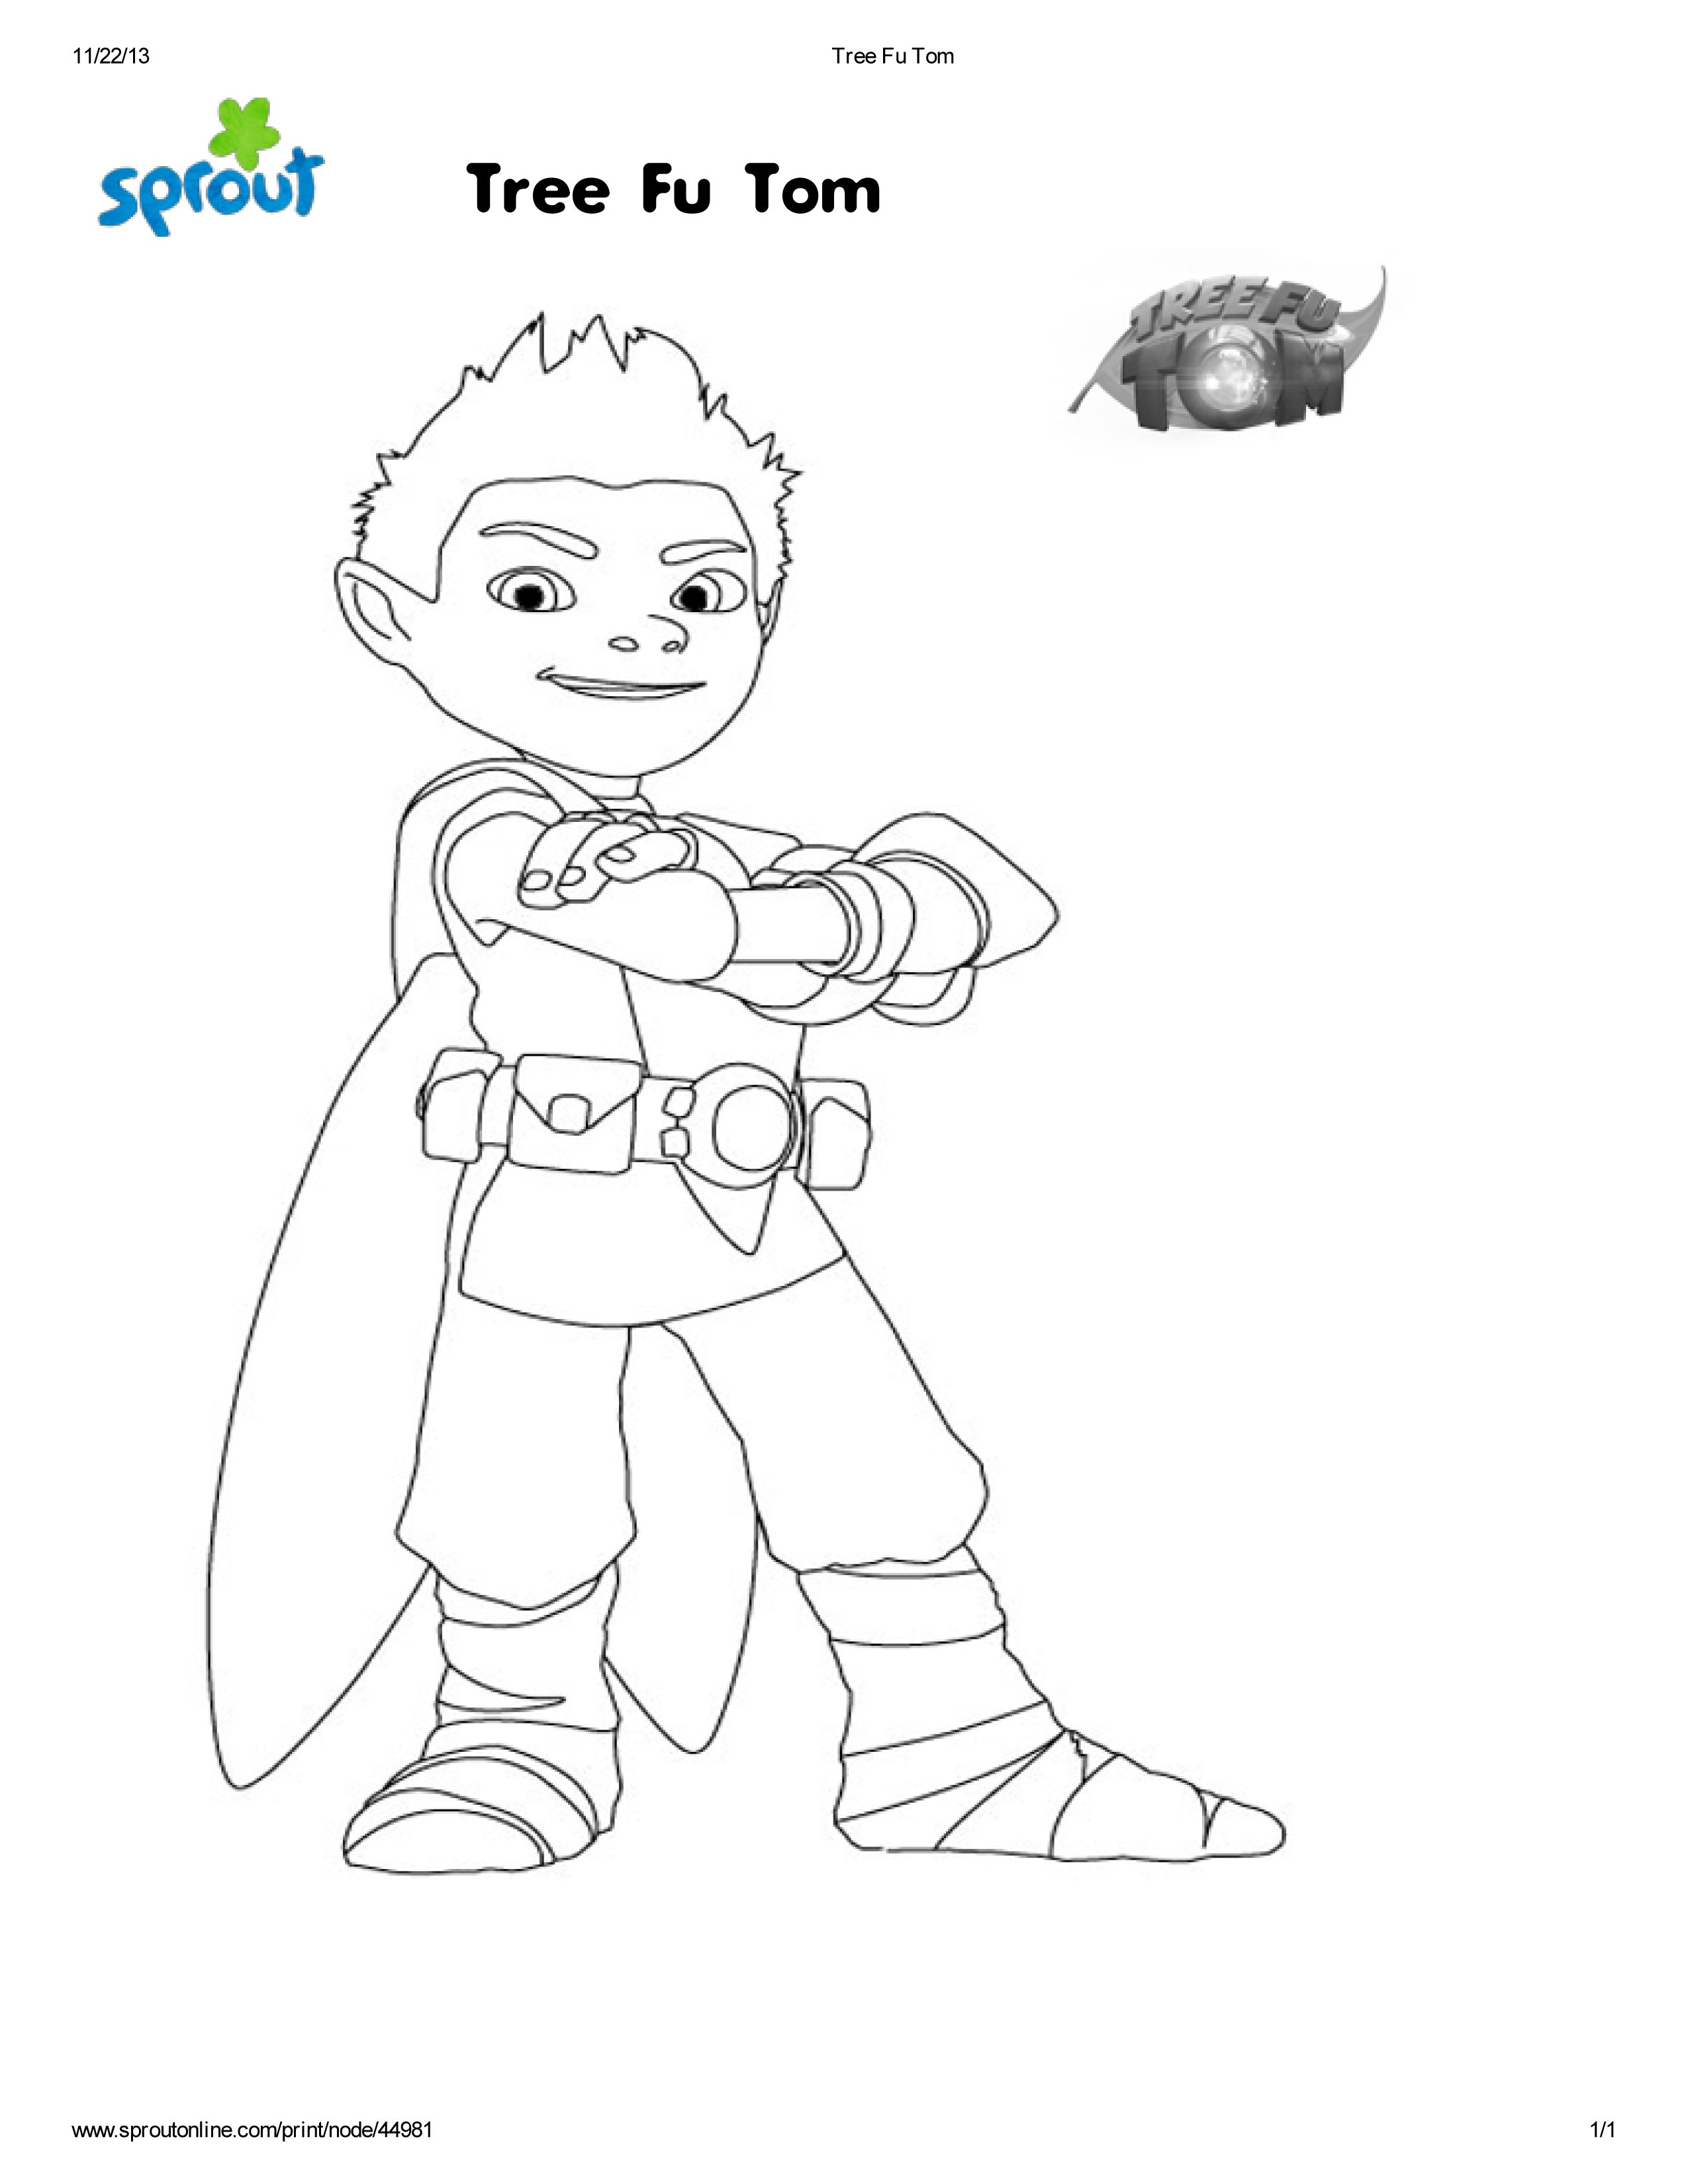 Free Coloring Page Of Tree Fu Tom I Was Selected For This